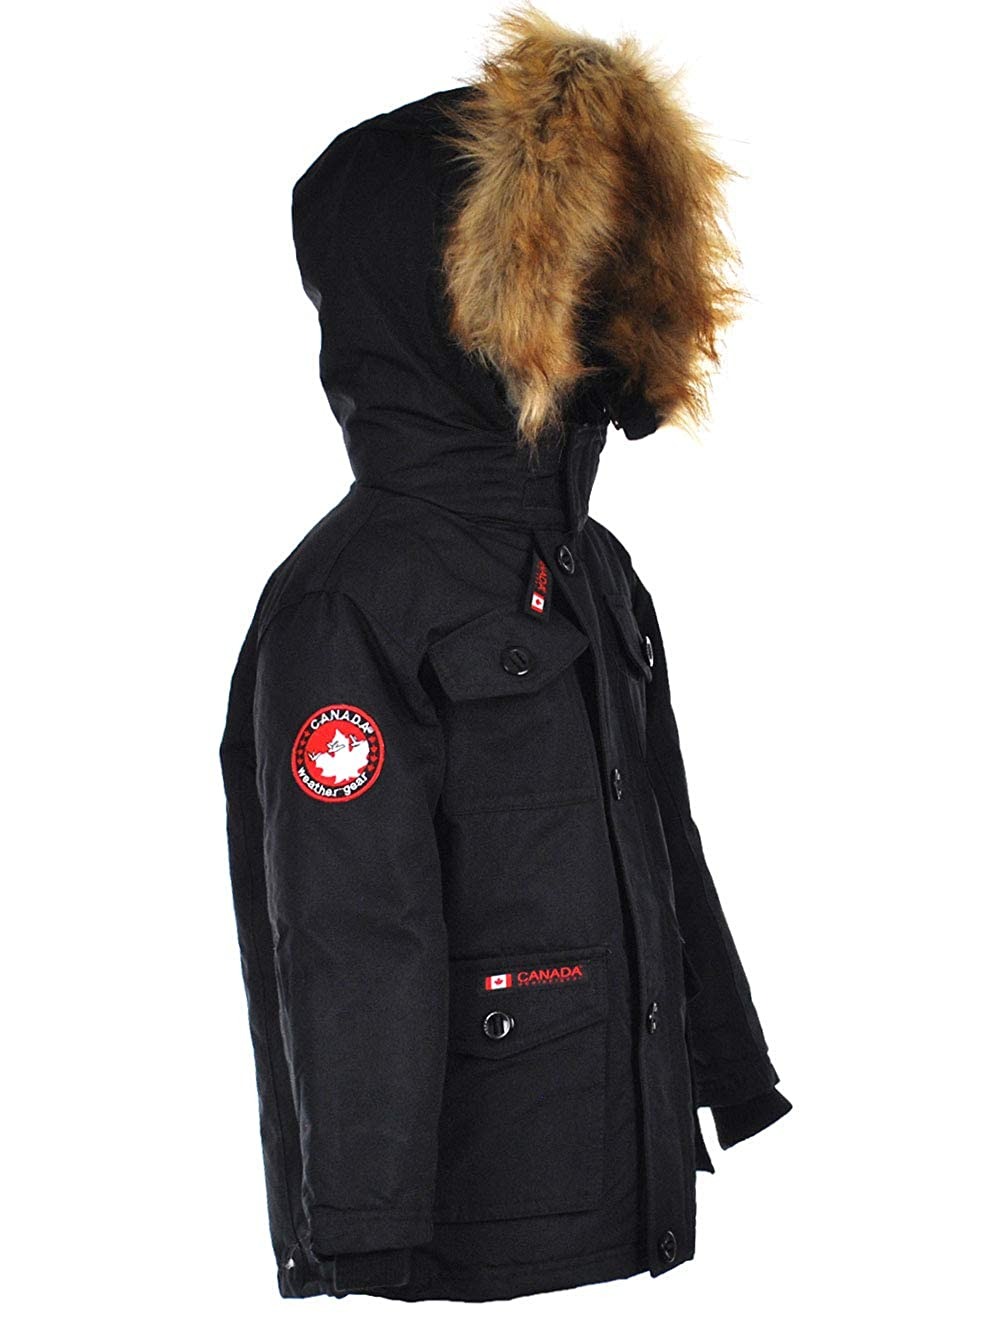 CANADA WEATHER GEAR Boys Insulated Jacket